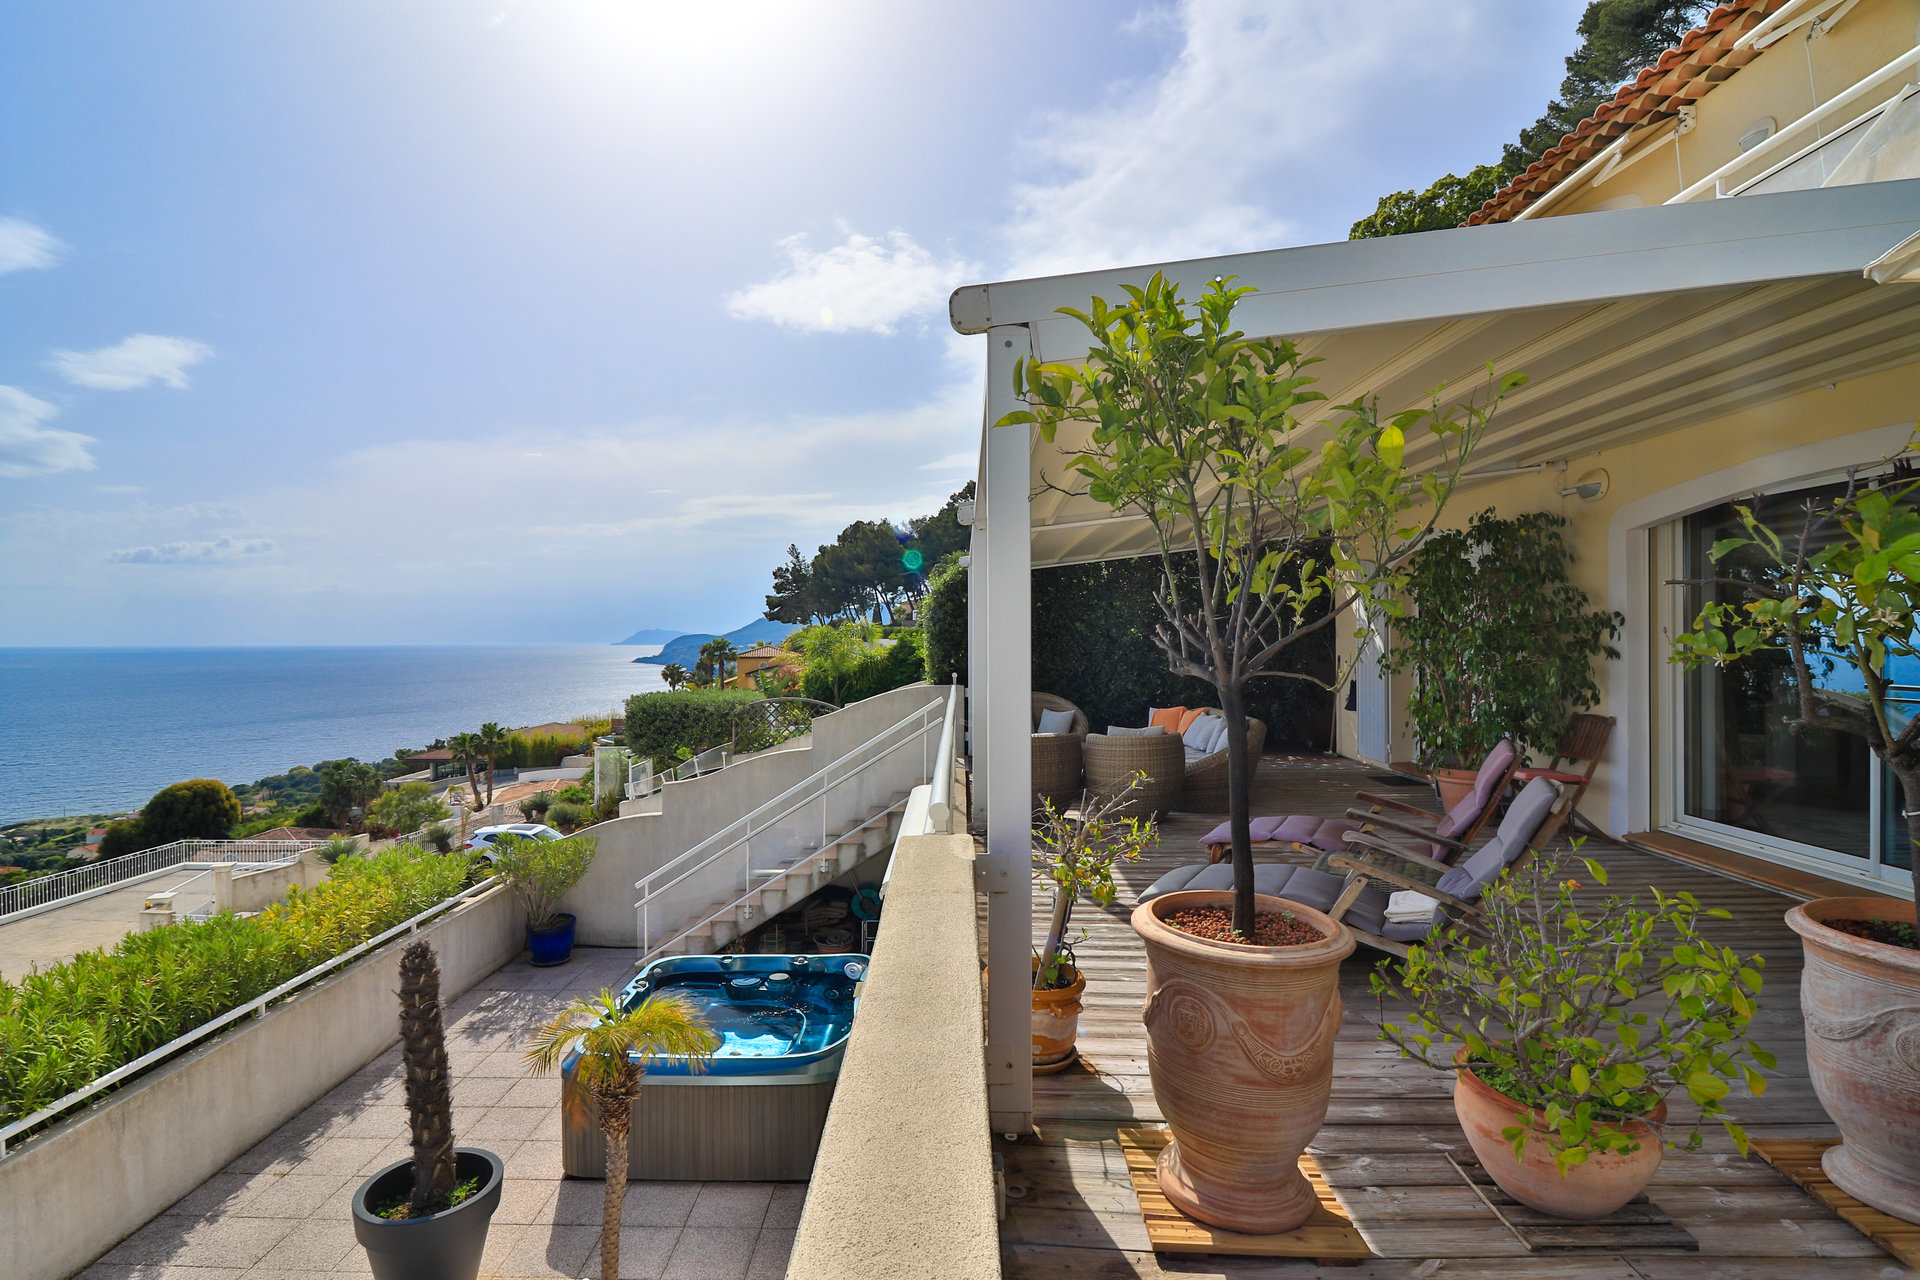 3 bedroom penthouse for sale in Carqueiranne